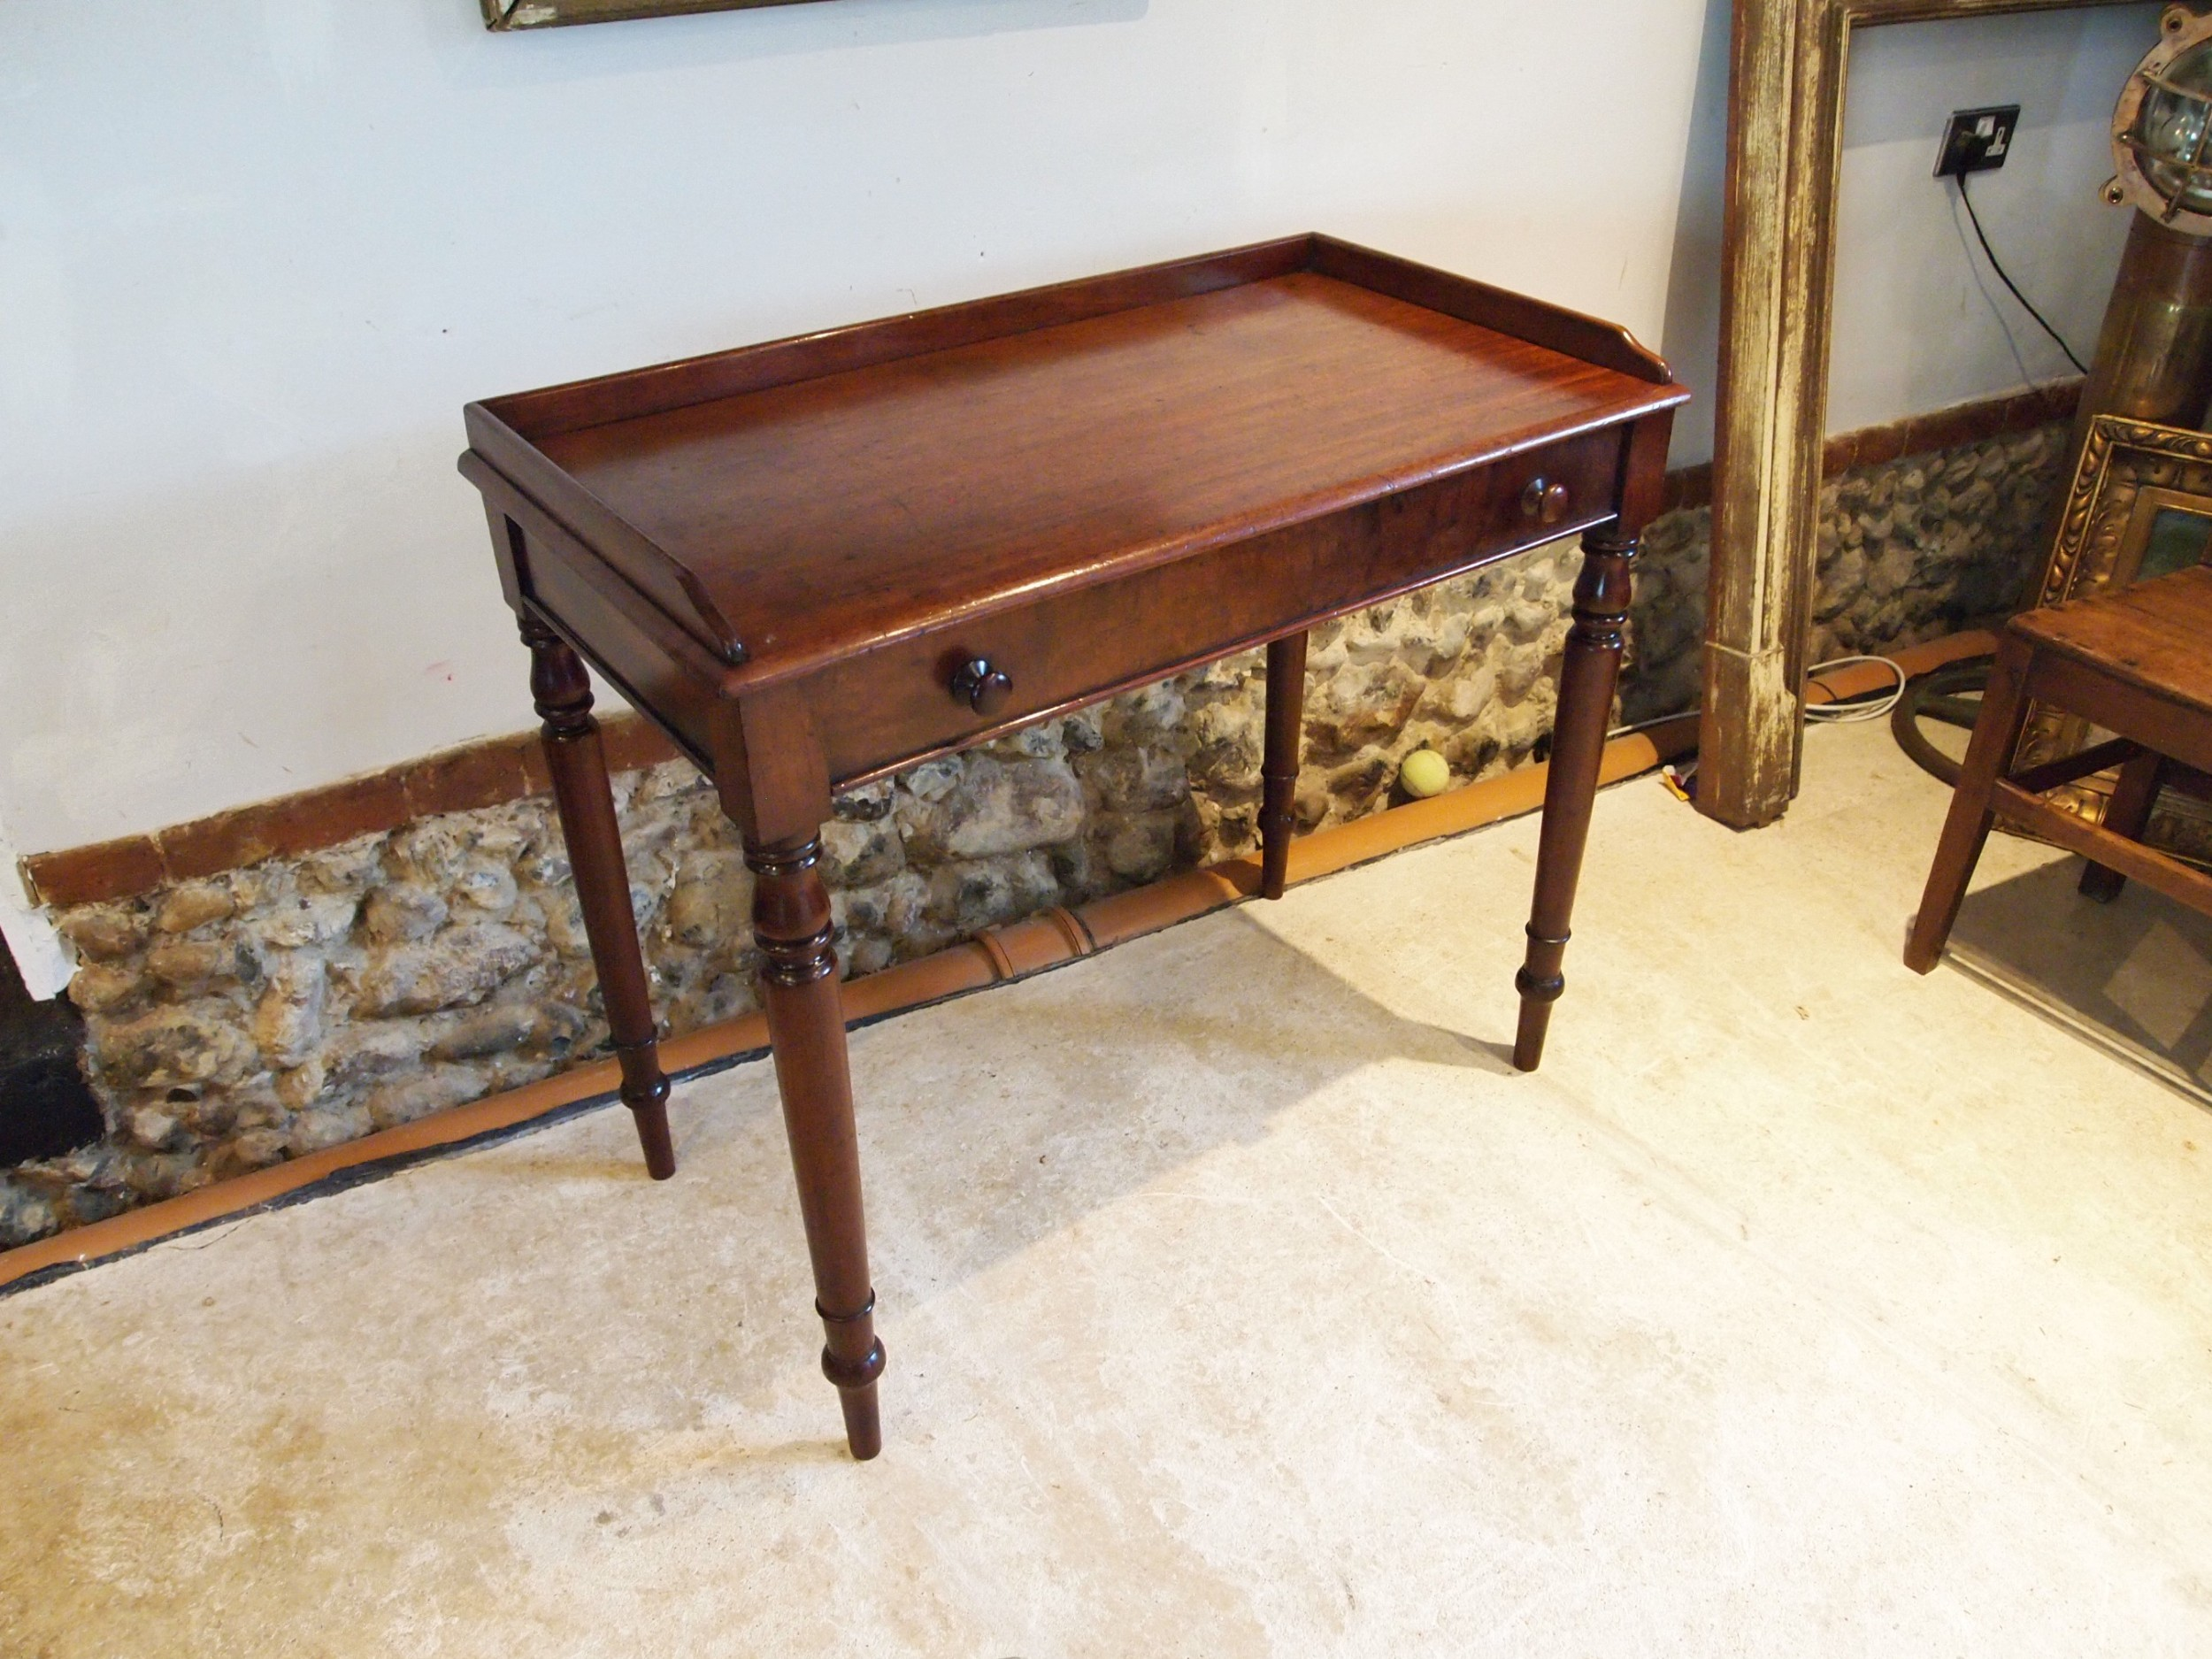 table fine writing table manner of gillows plum pudding mahogany c1840